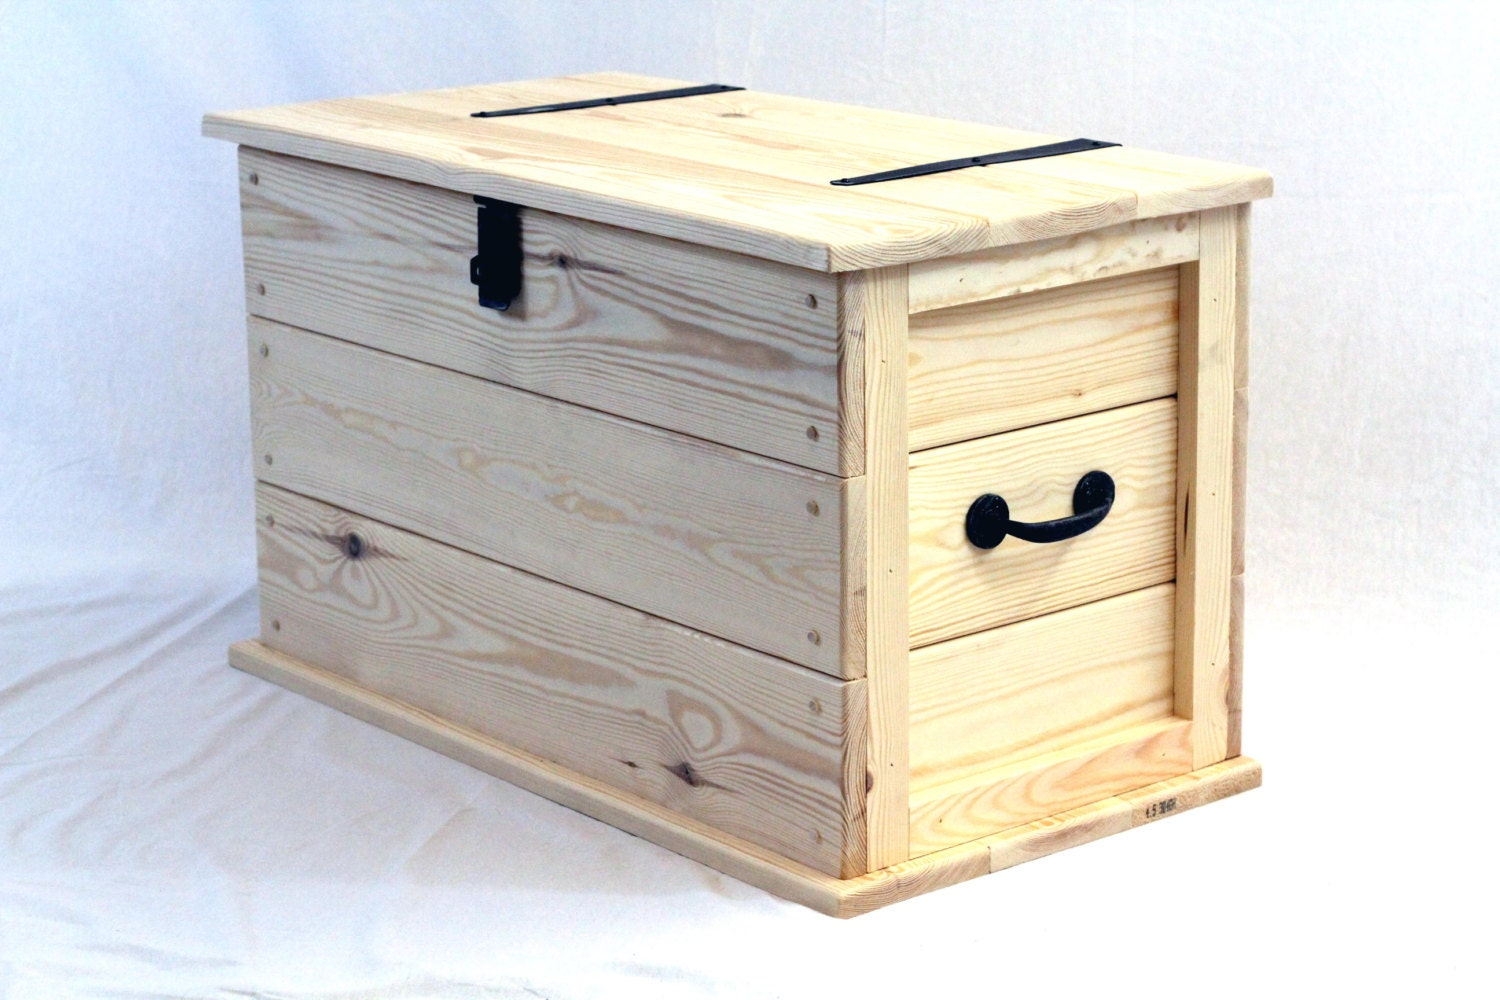 home drawers table raw ladder decor furniture with wood chairs round nightstand chest dresser back small pine bedroom about interior tops amazing of unfinished drawer remodel